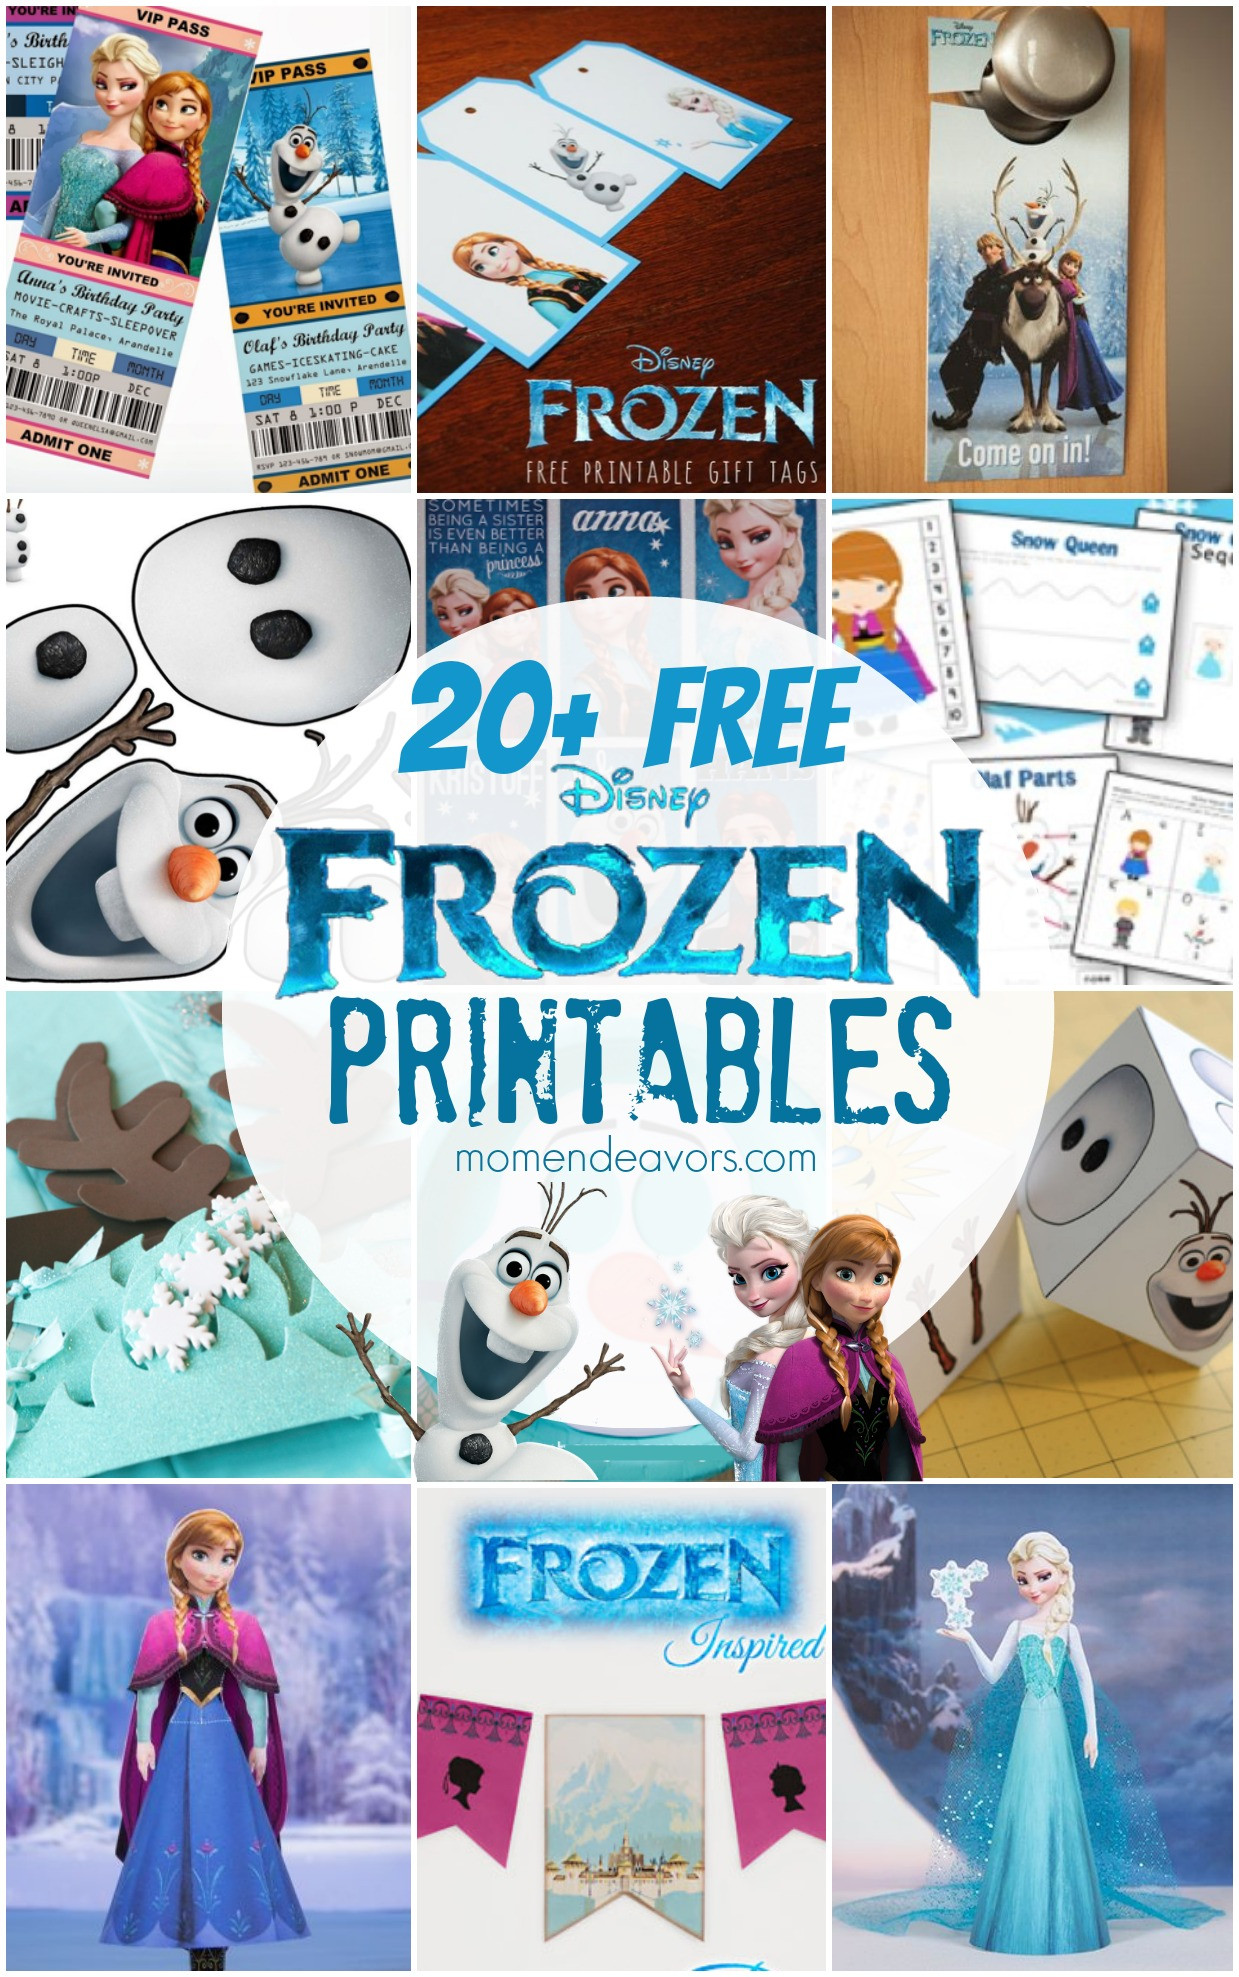 Frozen Printable Invitation 20 Free Disney Frozen Printables Activity Sheets & Party